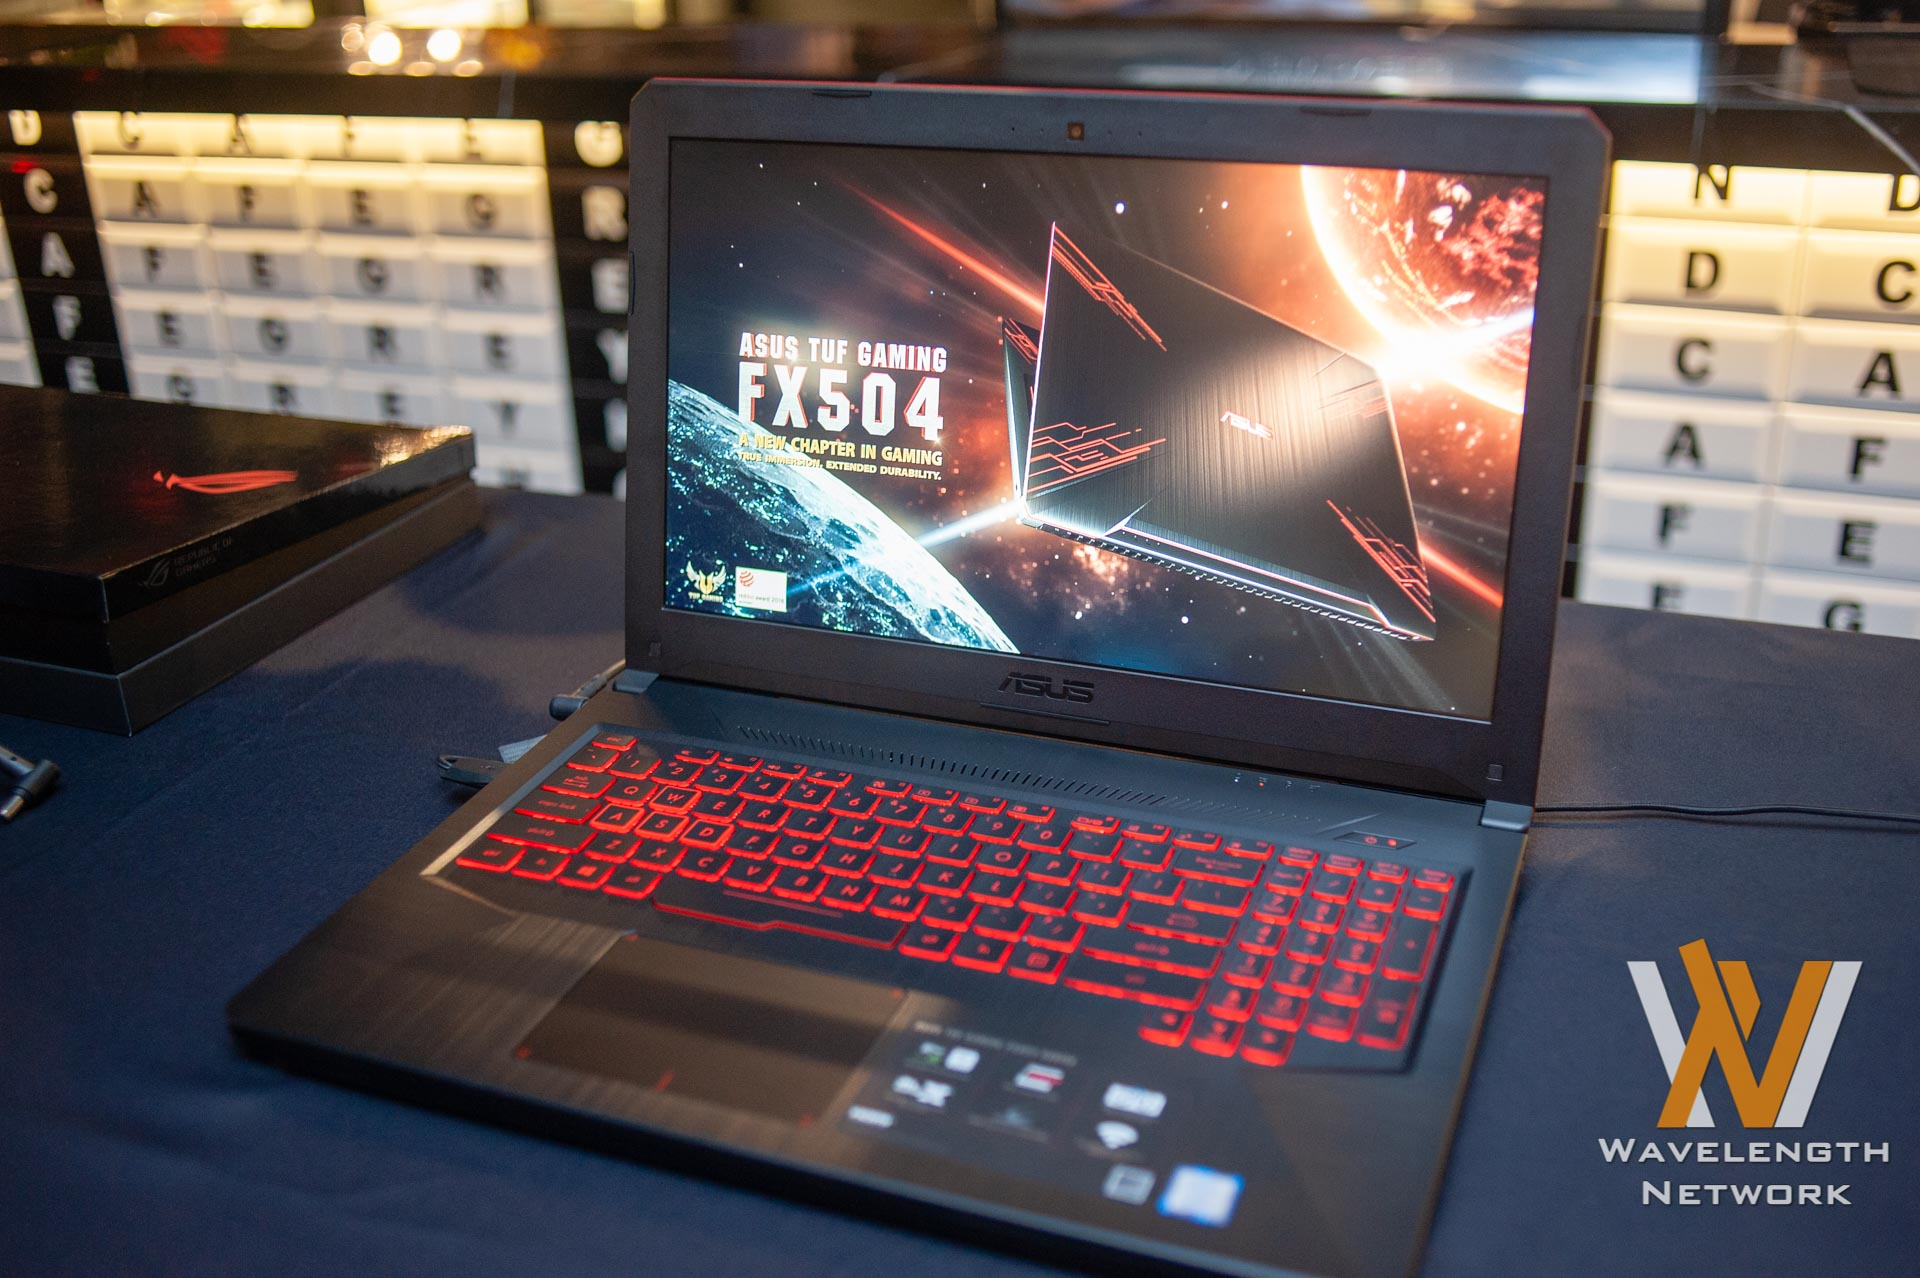 ASUS Launches New TUF Gaming & ROG Laptops With 8th Gen